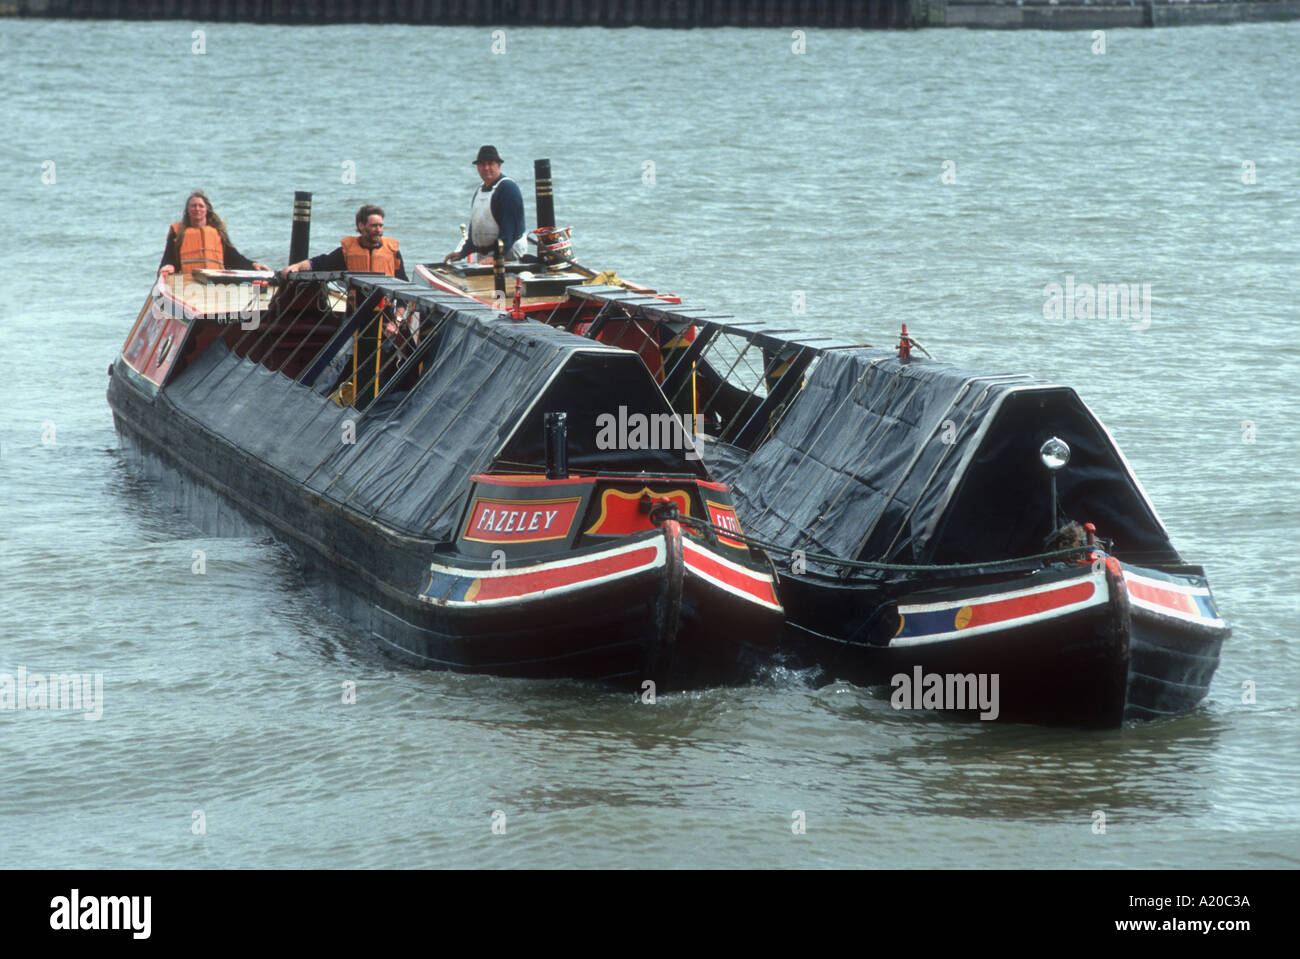 Coal carrying Josher narrowboats on the River Thames at Surrey Docks London England UK - Stock Image